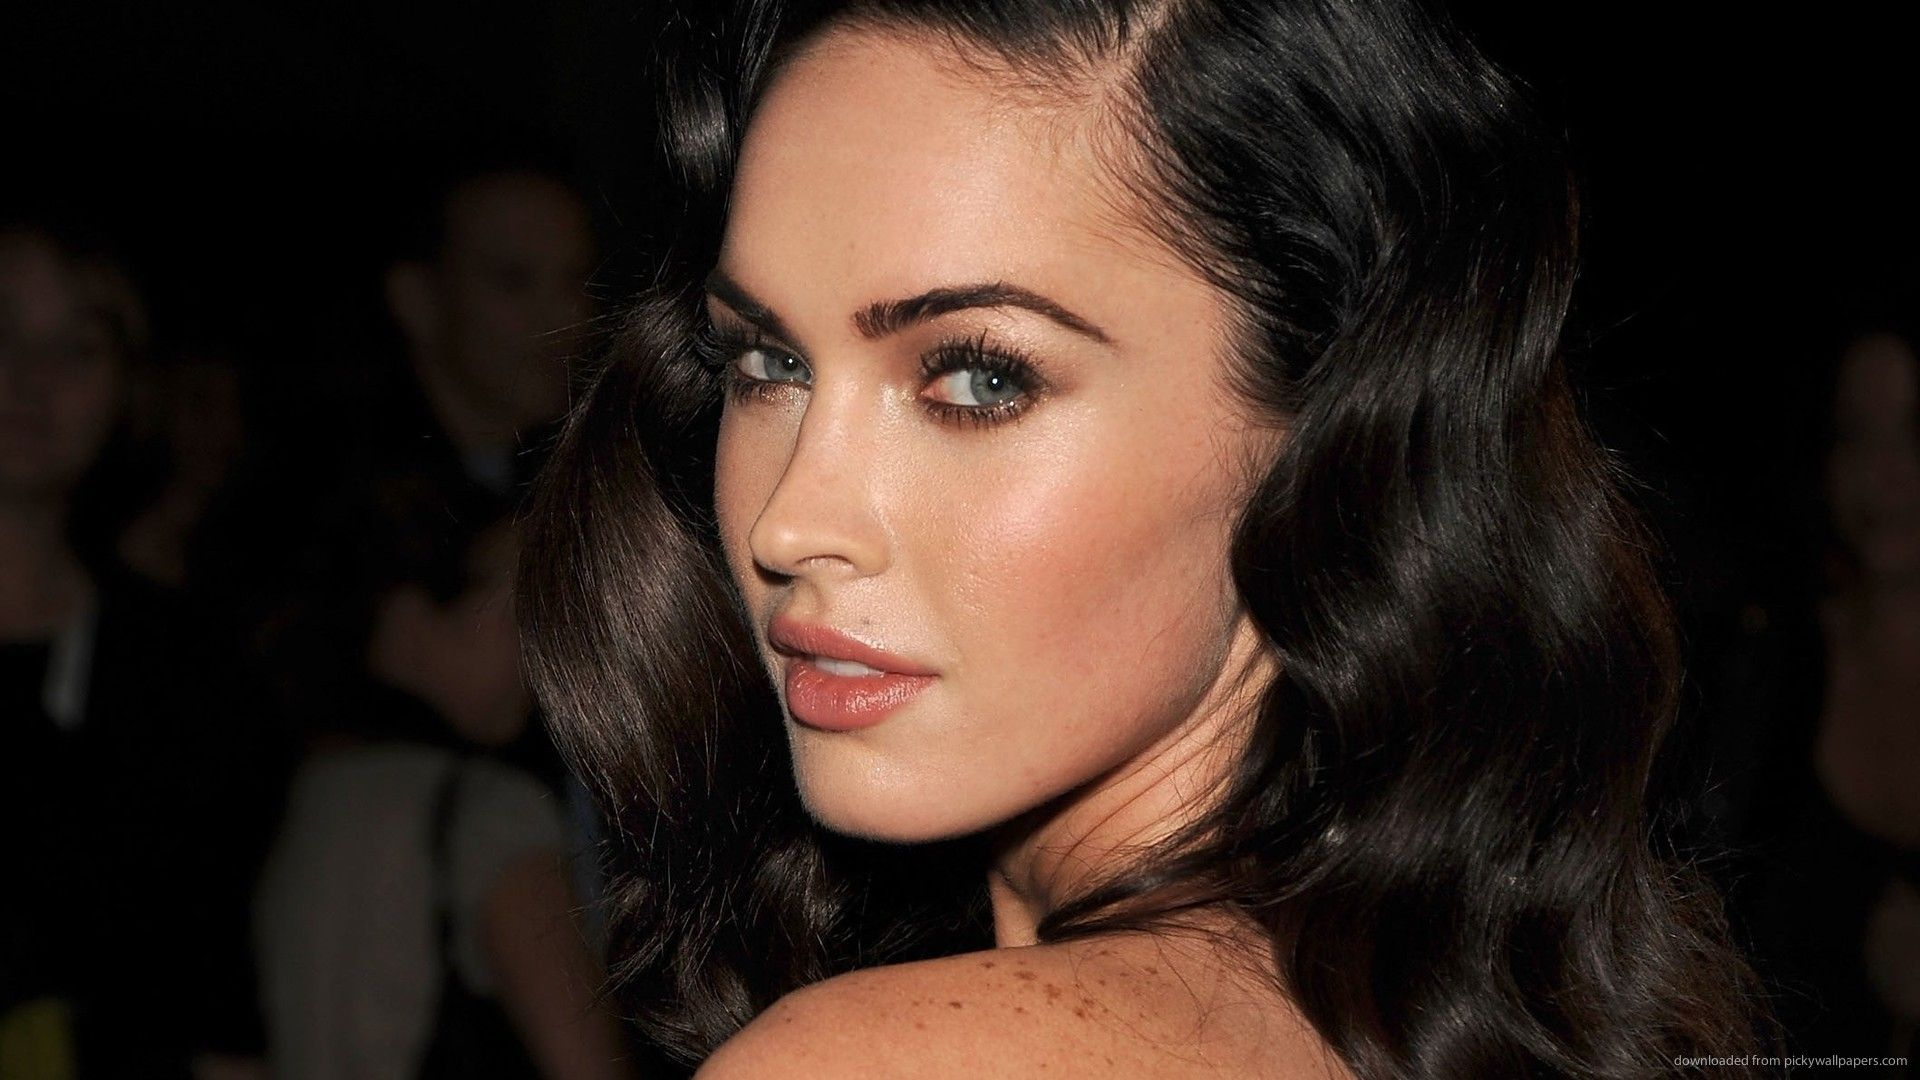 [Megapost] Megan Fox HD Wallpapers